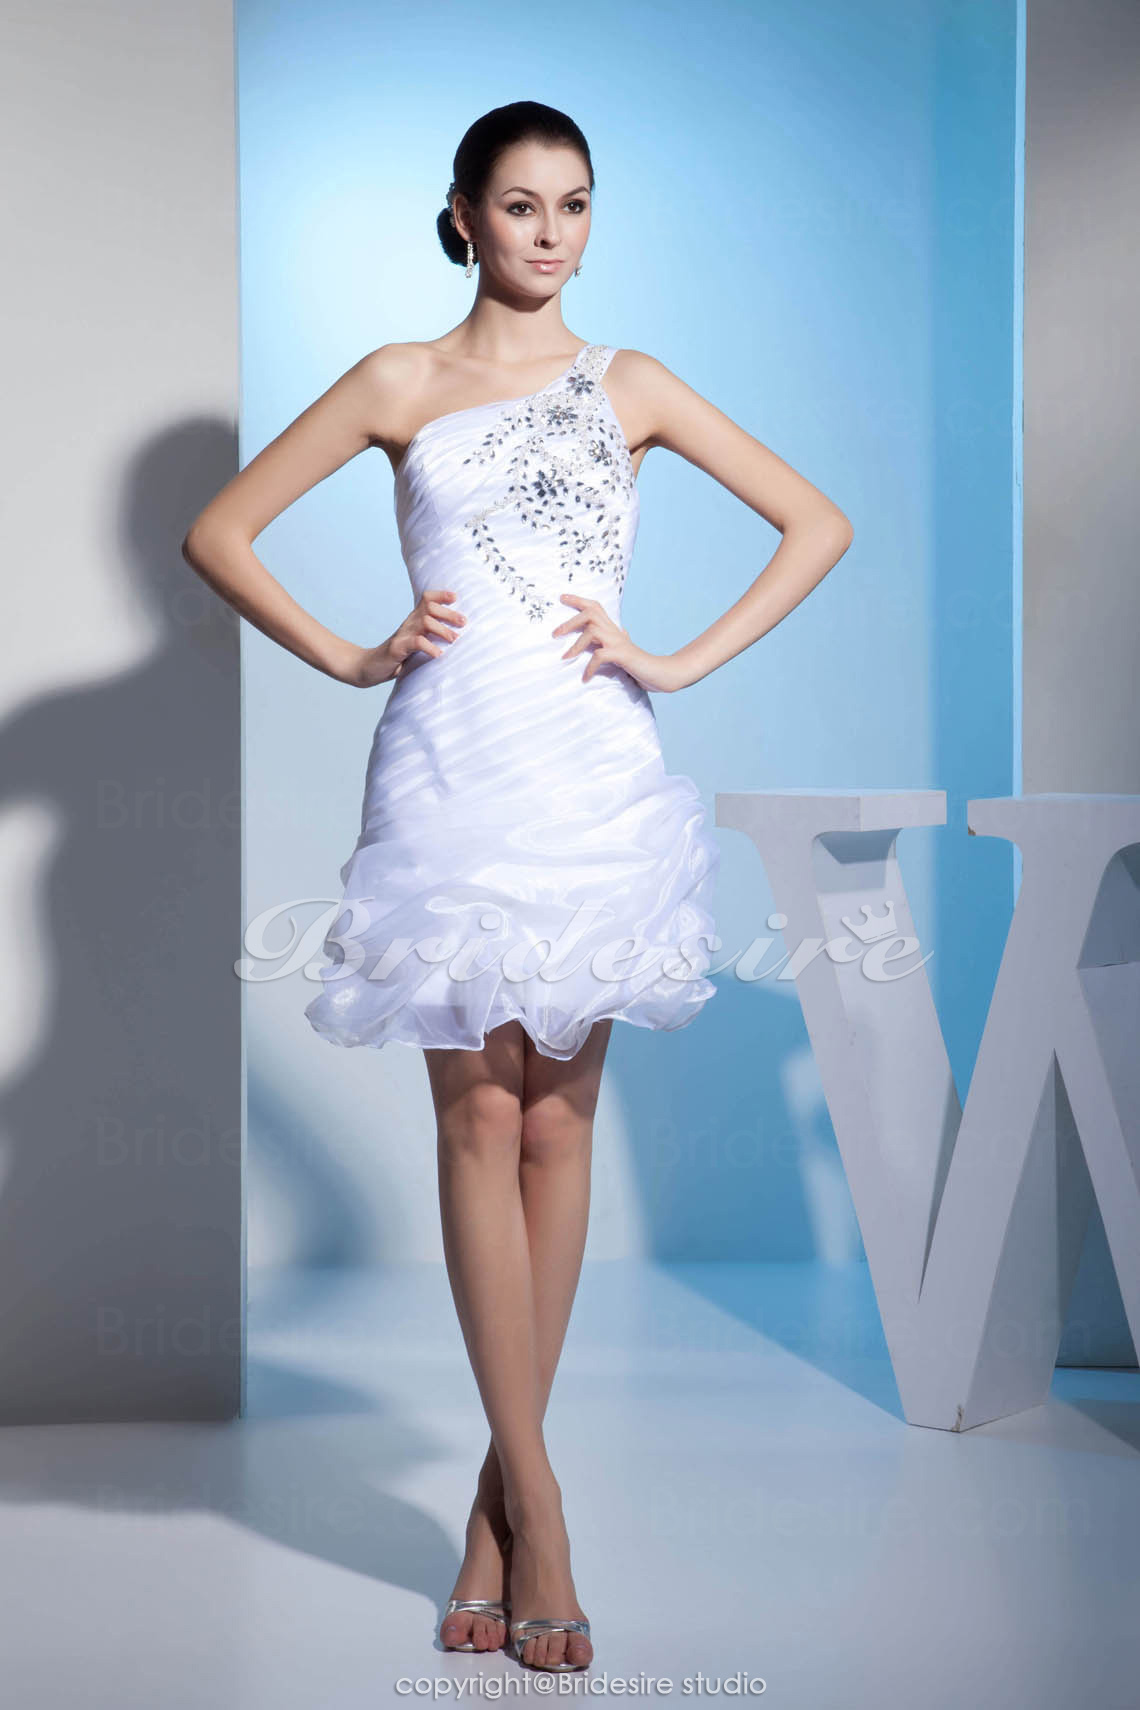 Sheath/Column One Shoulder Knee-length Sleeveless Organza Dress